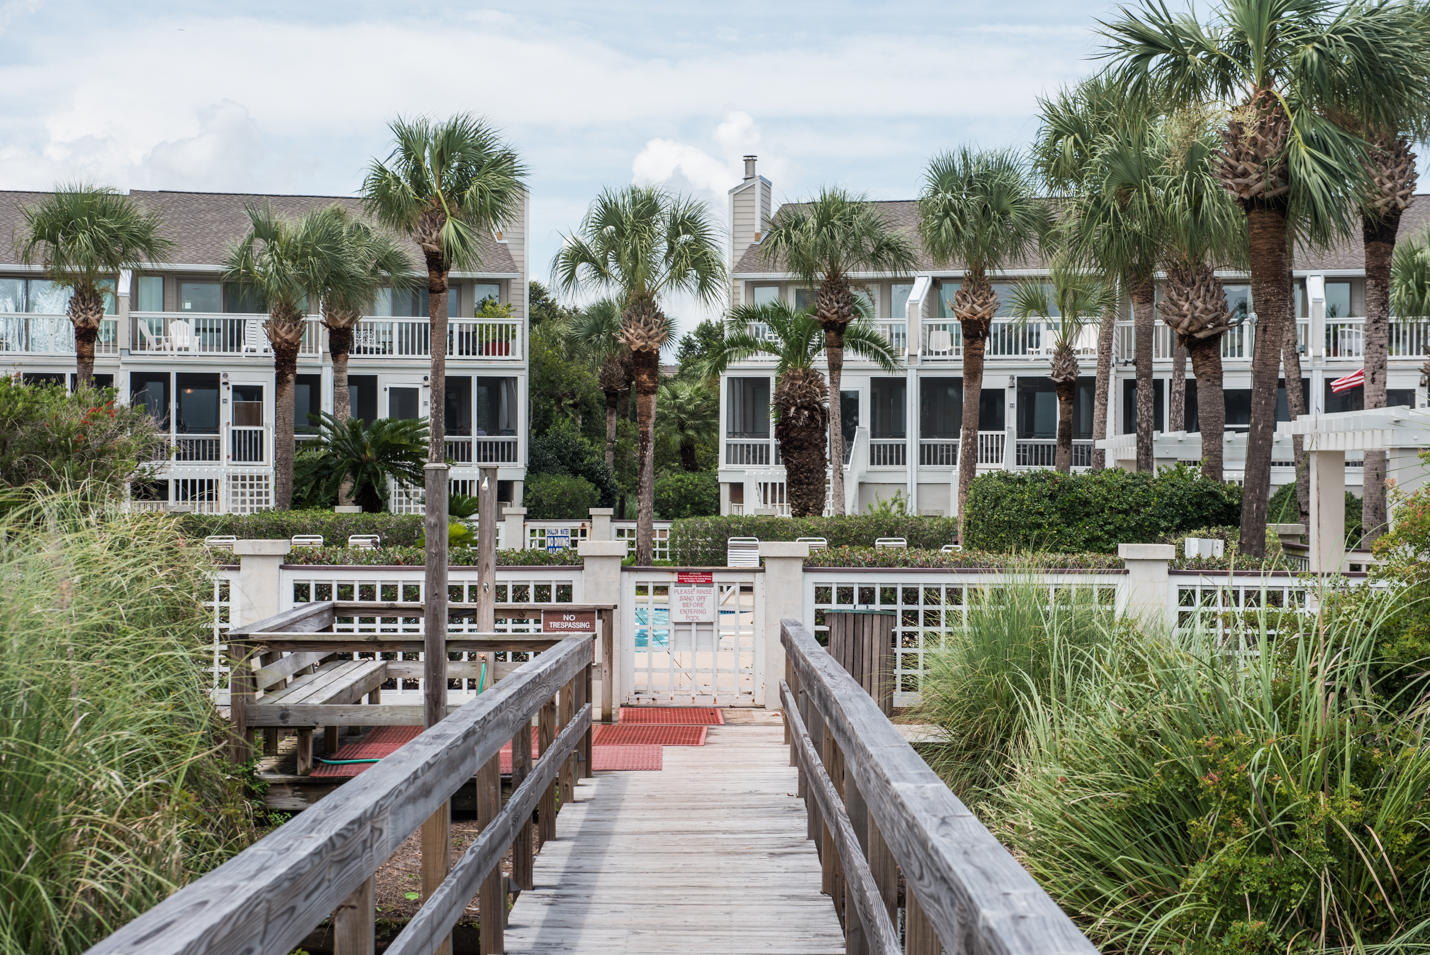 Beach Club Villas Homes For Sale - 66 Beach Club Villas, Isle of Palms, SC - 37